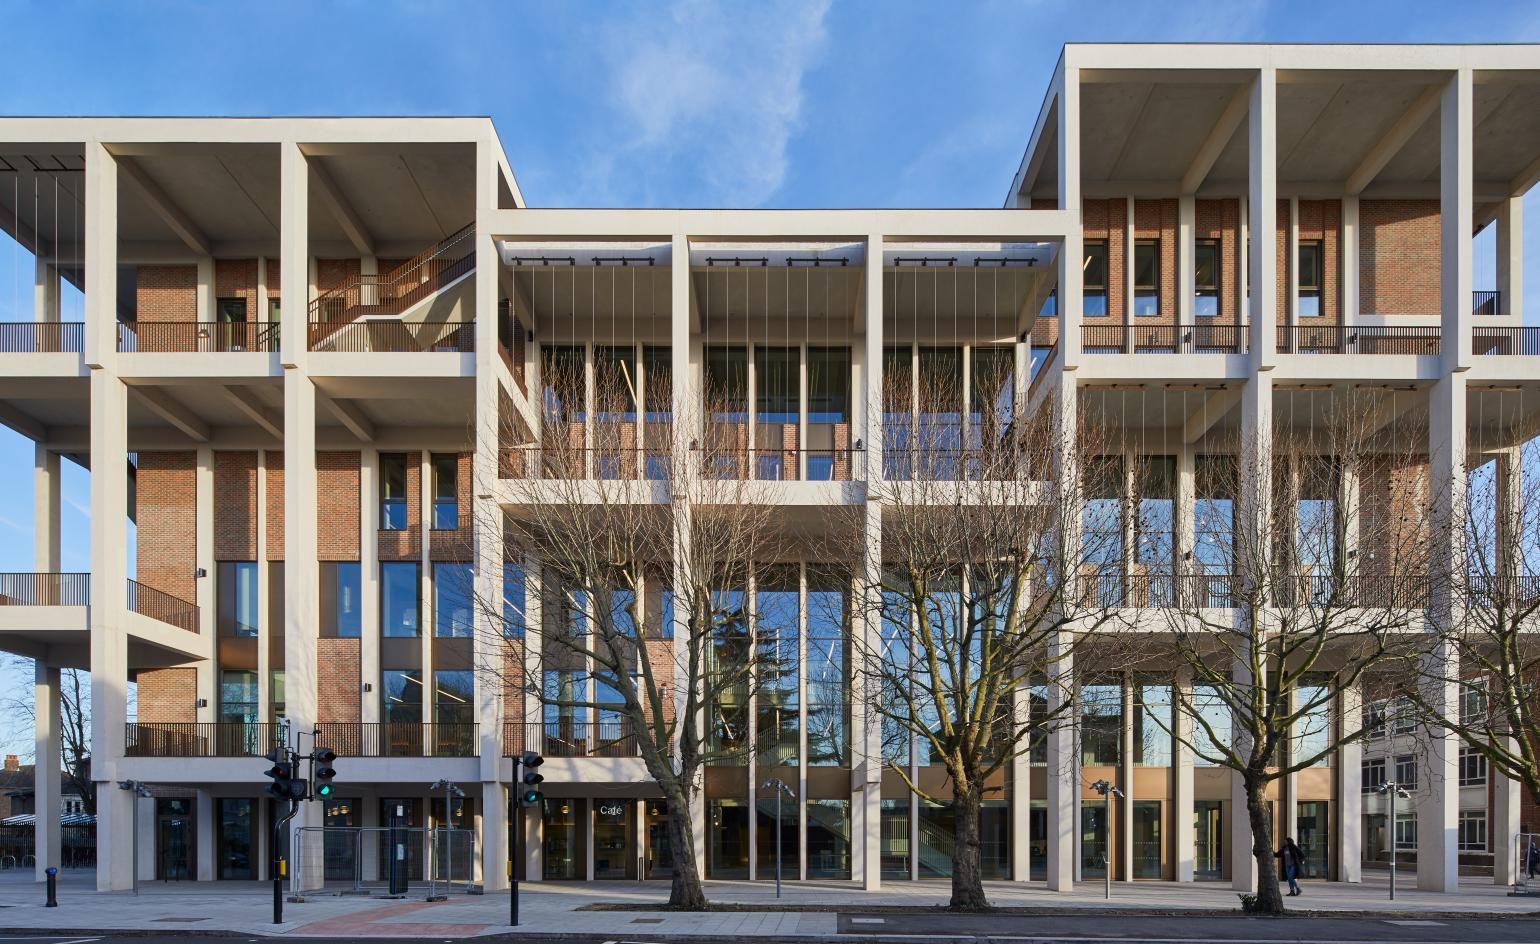 Grafton's Town House is a celebration of openness and community